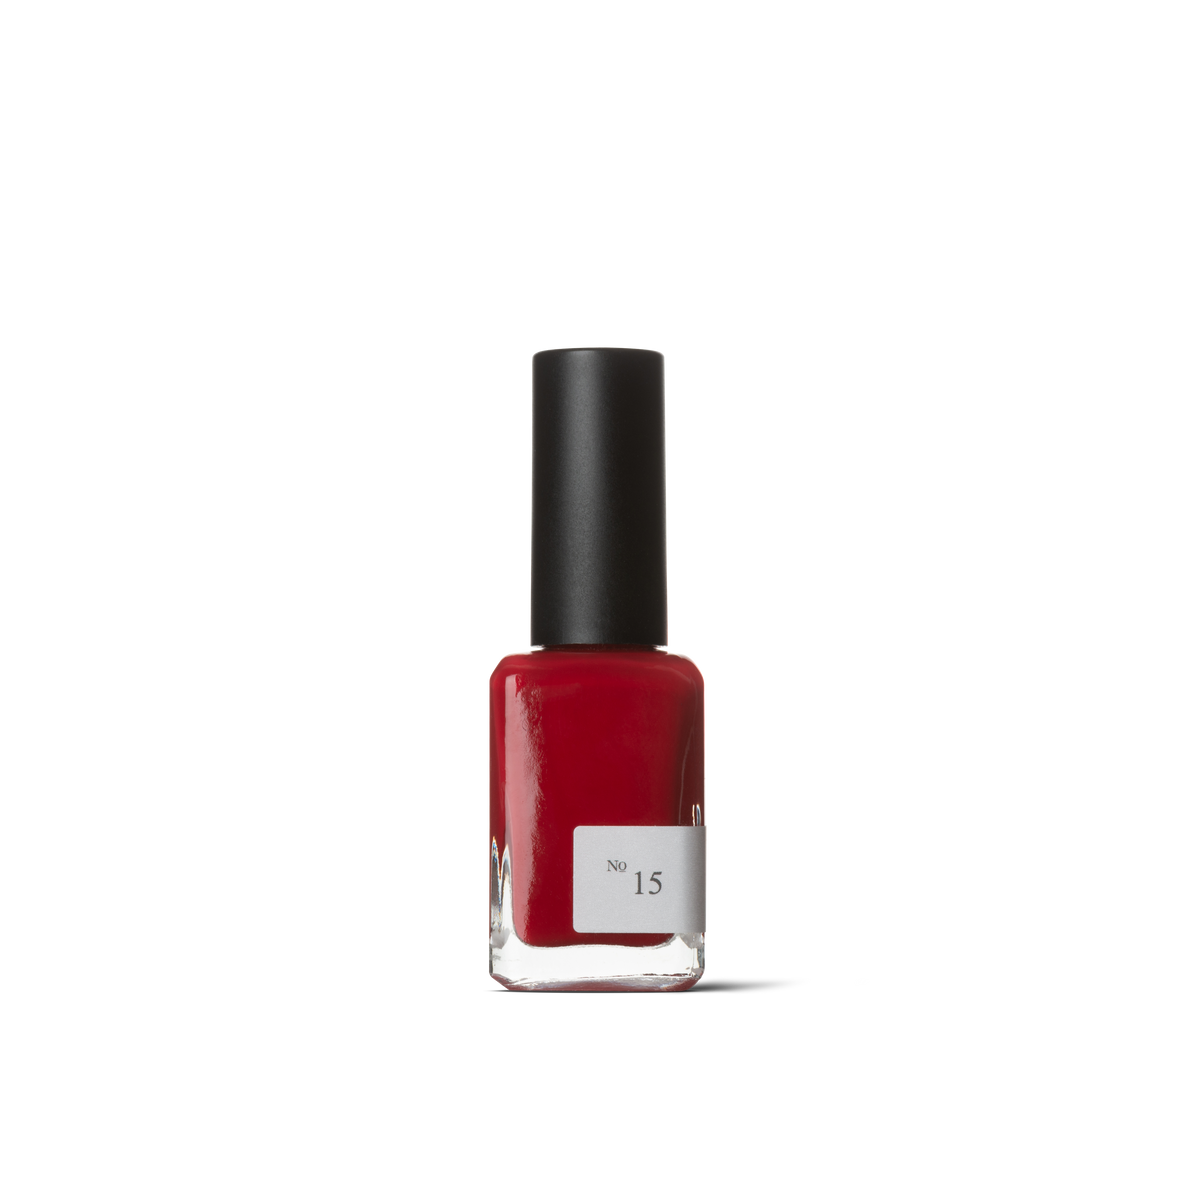 Nailpolish no. 15 (14 ml)